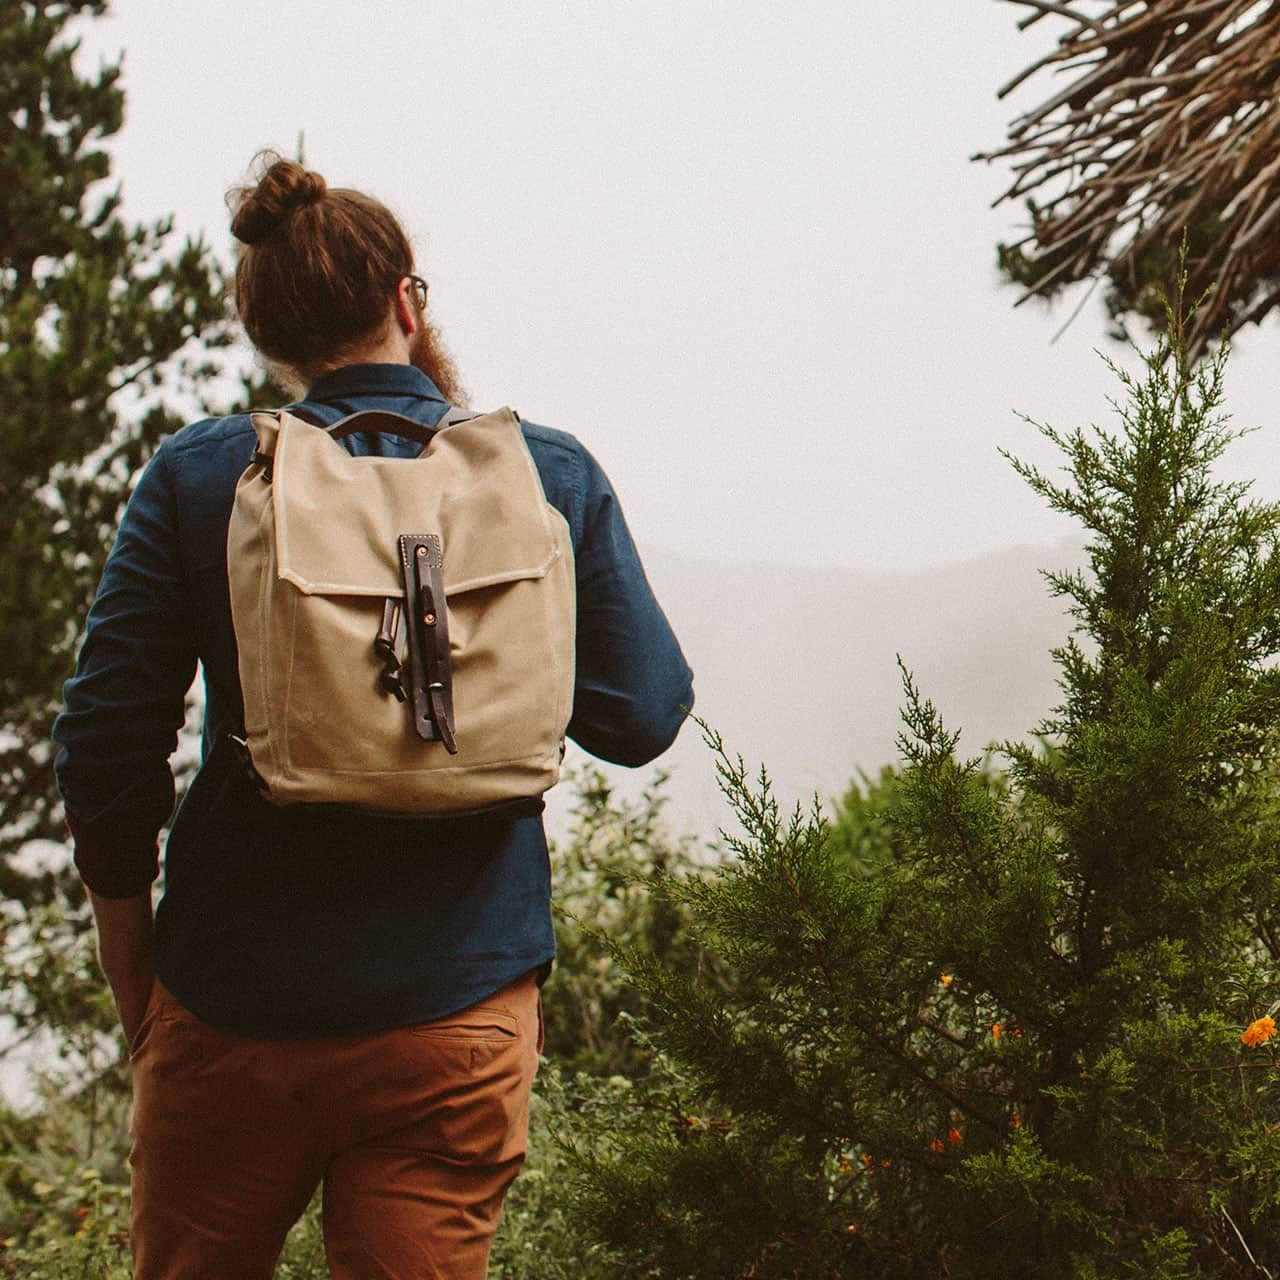 Simple Backpack in Color Sand worn on the back of a man traveling through Evergreens